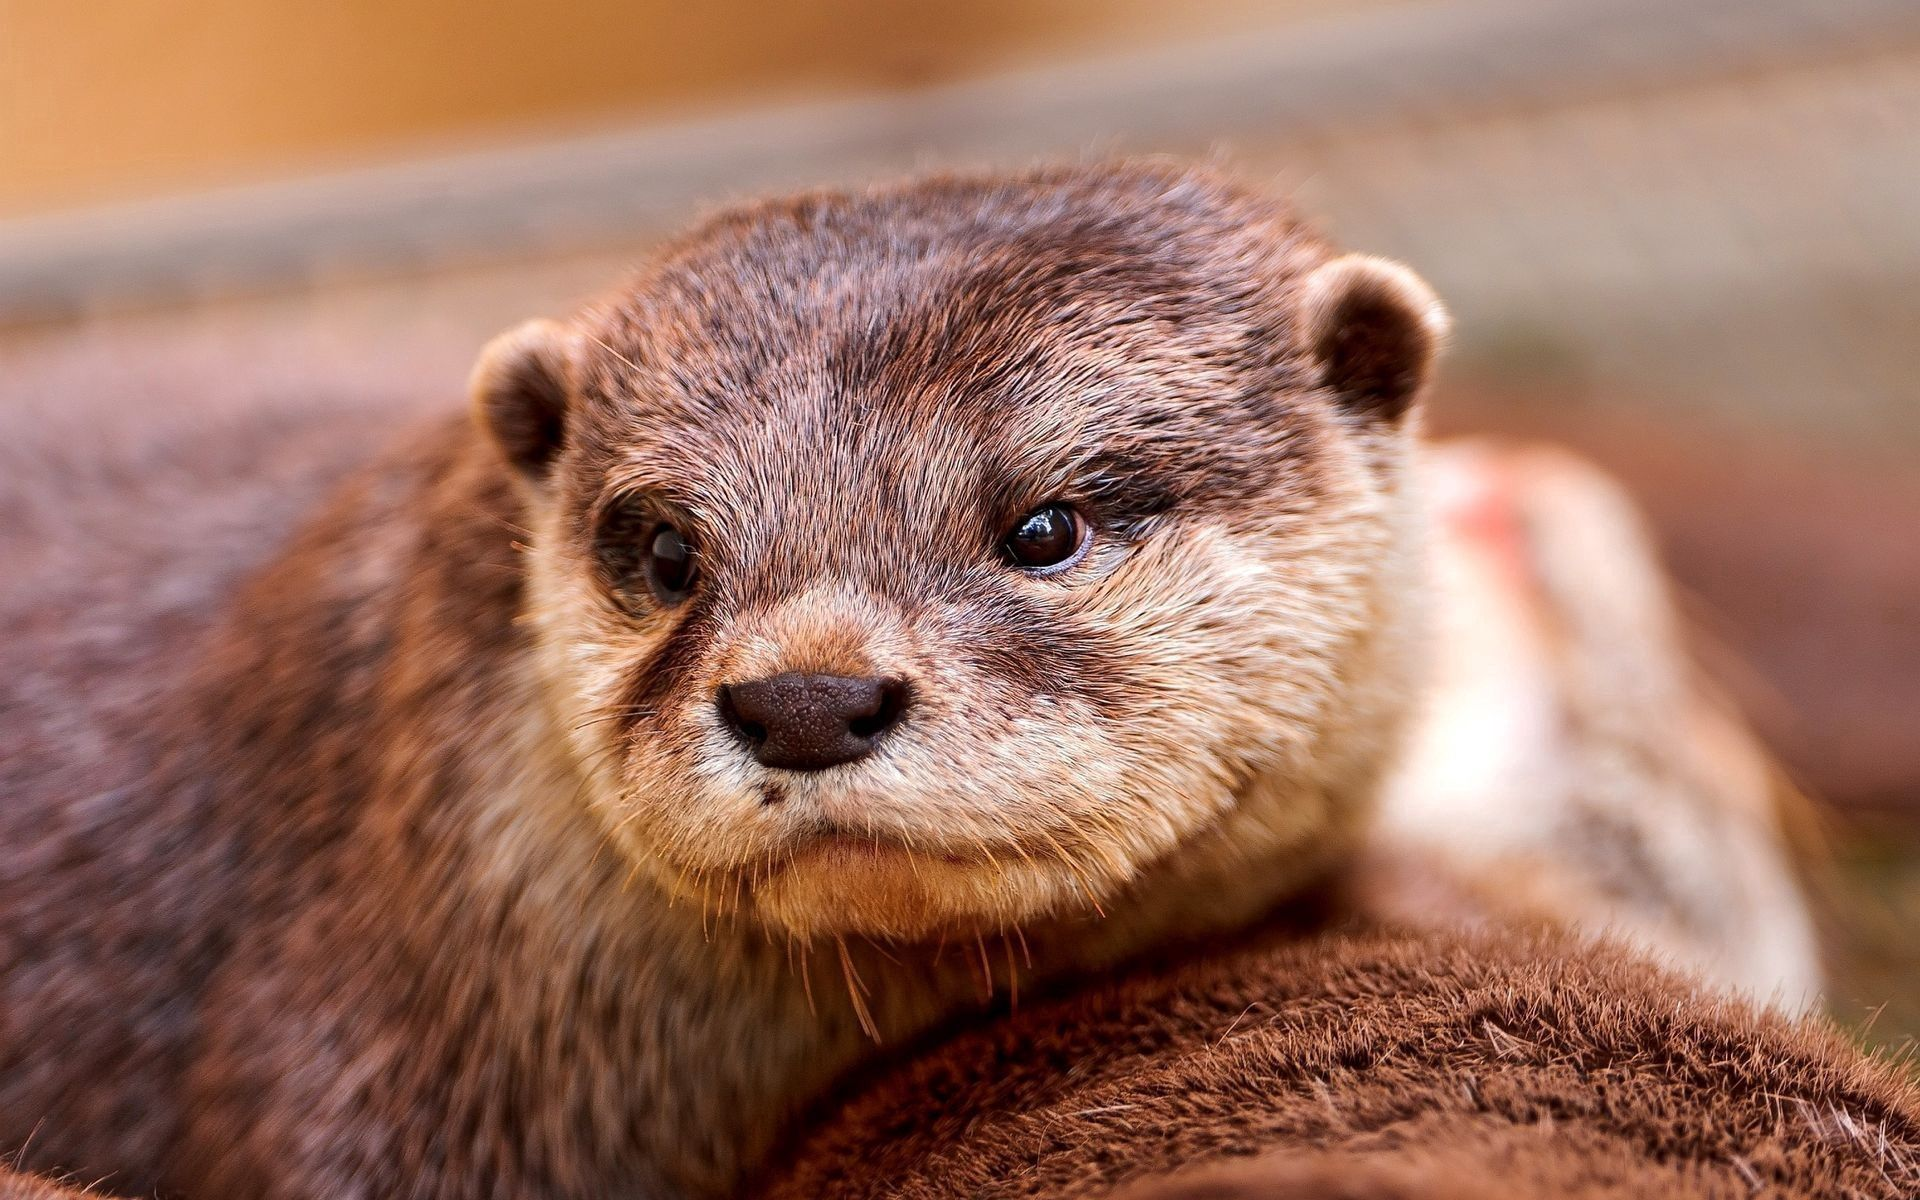 68719 download wallpaper Animals, Otter, Muzzle, Eyes, Animal screensavers and pictures for free